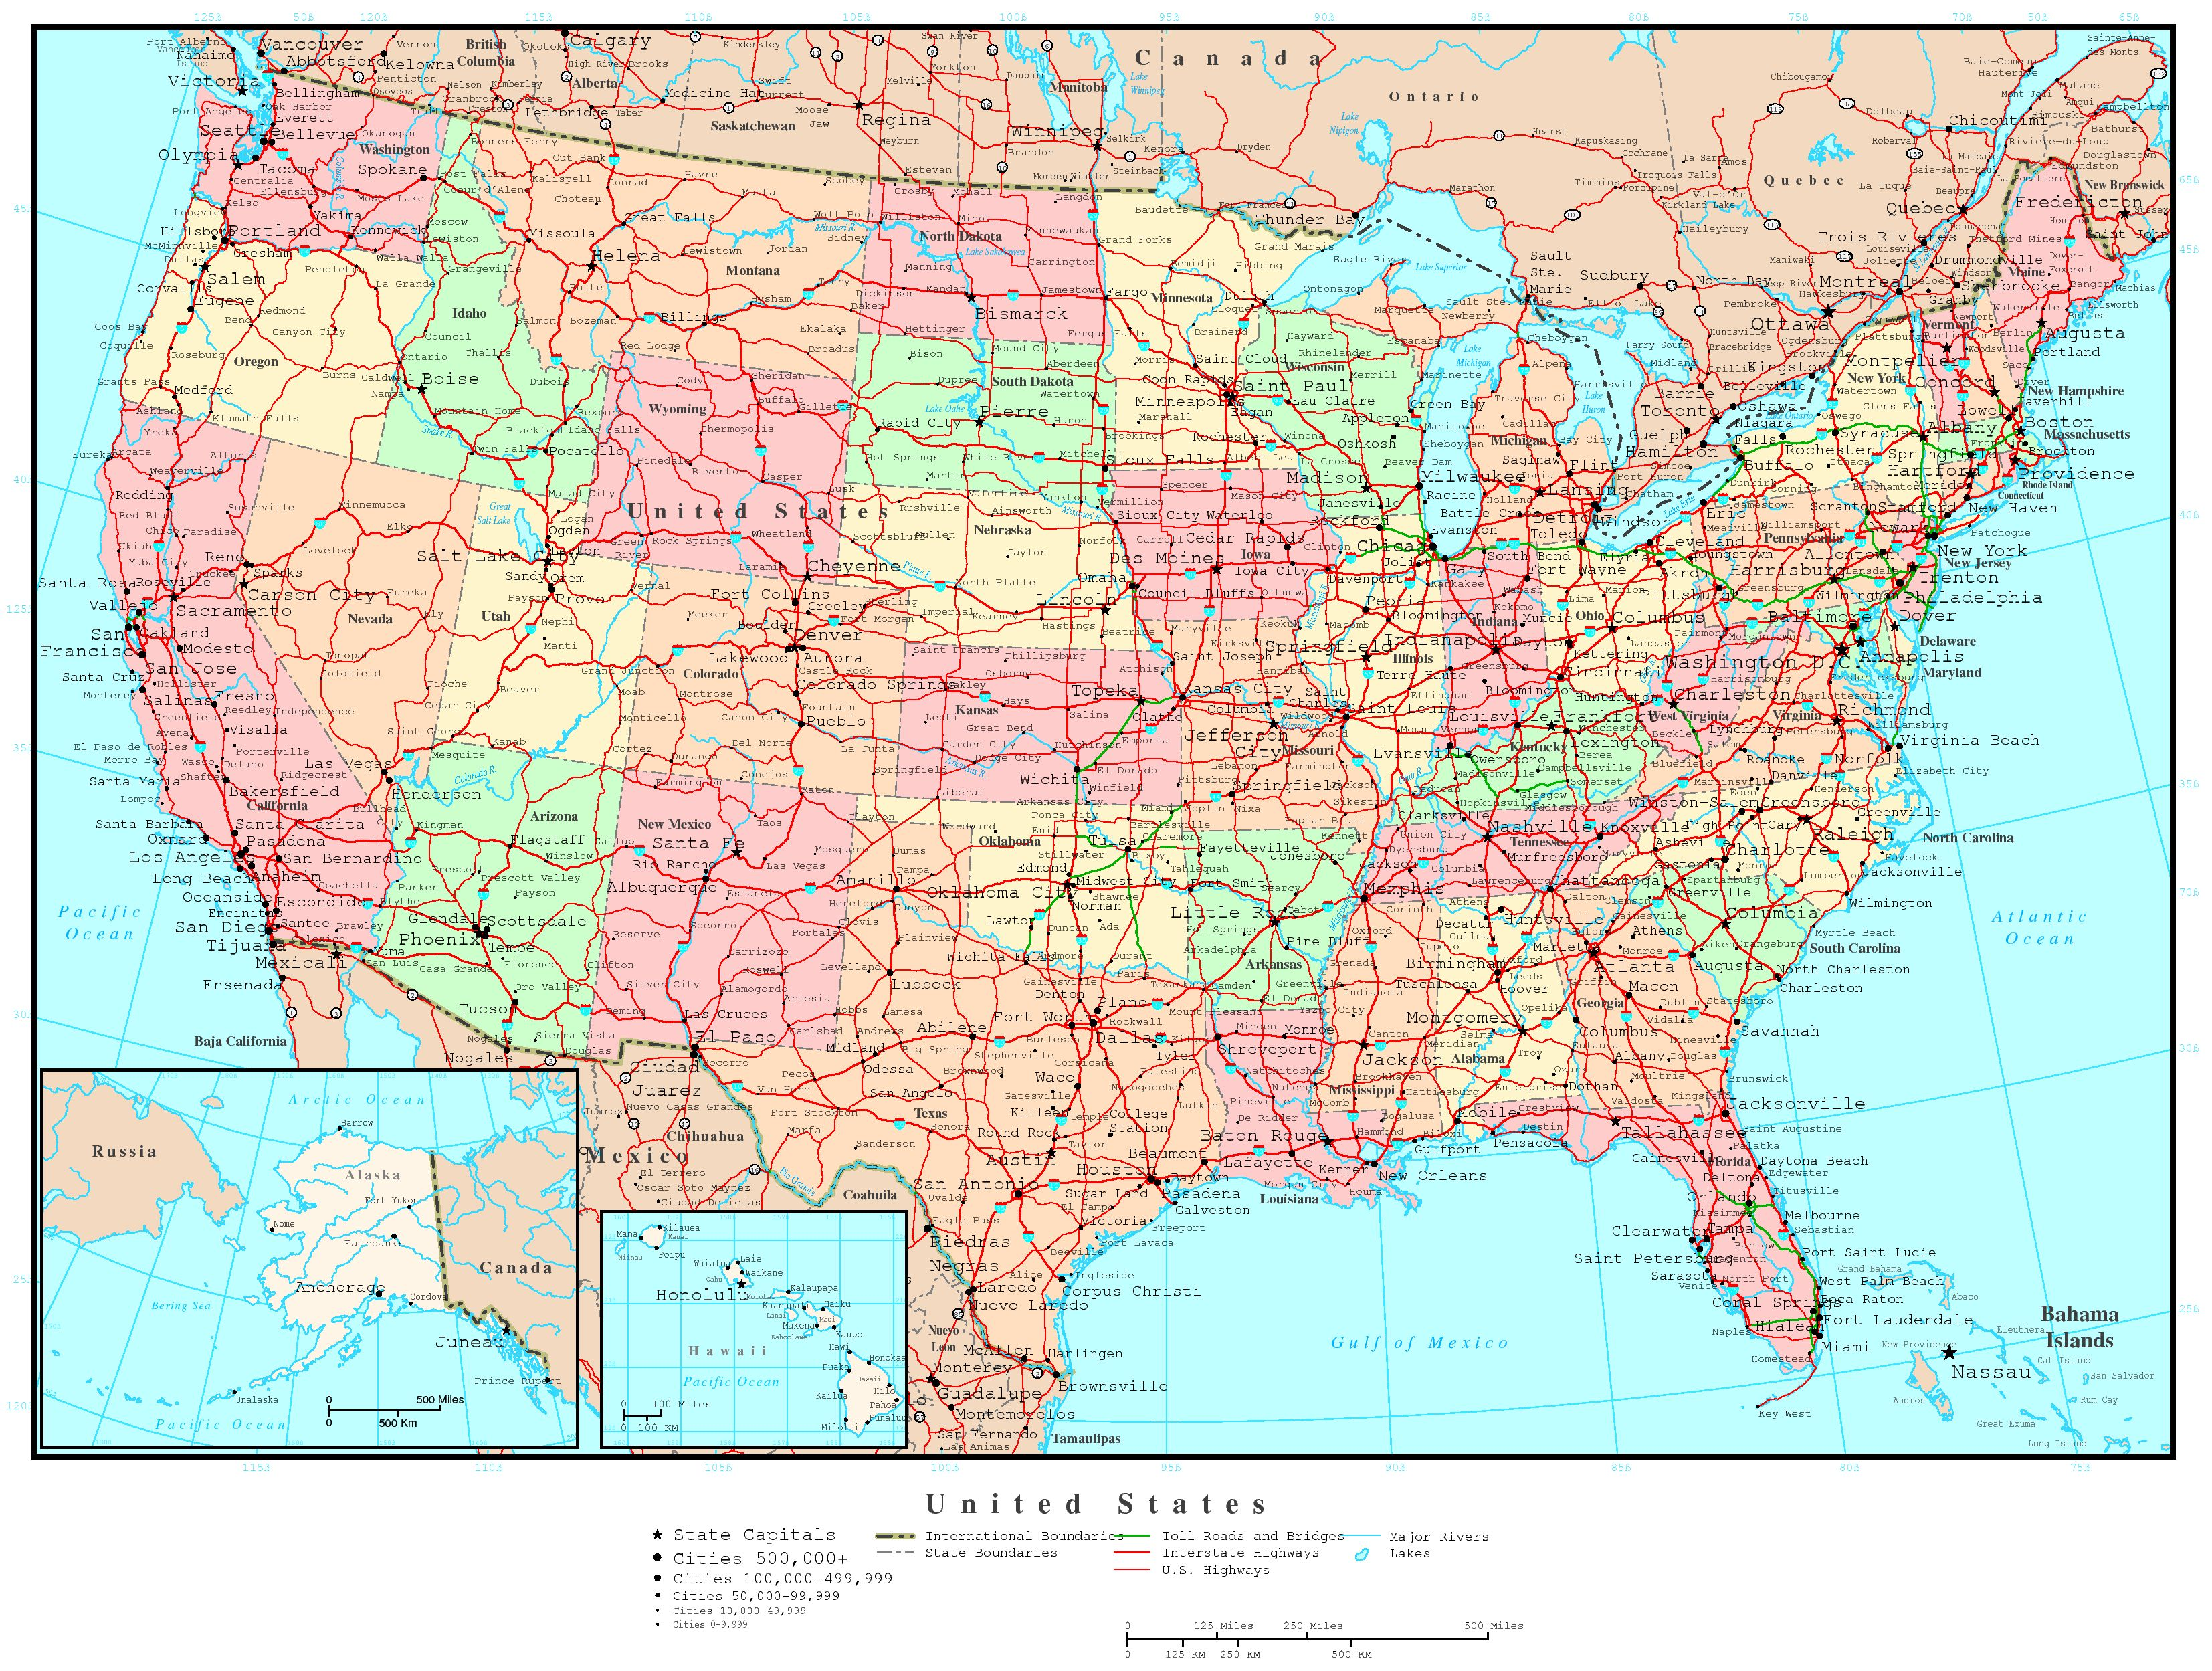 United States Map Online Maps Of United States Country - Detailed usa map with states and cities